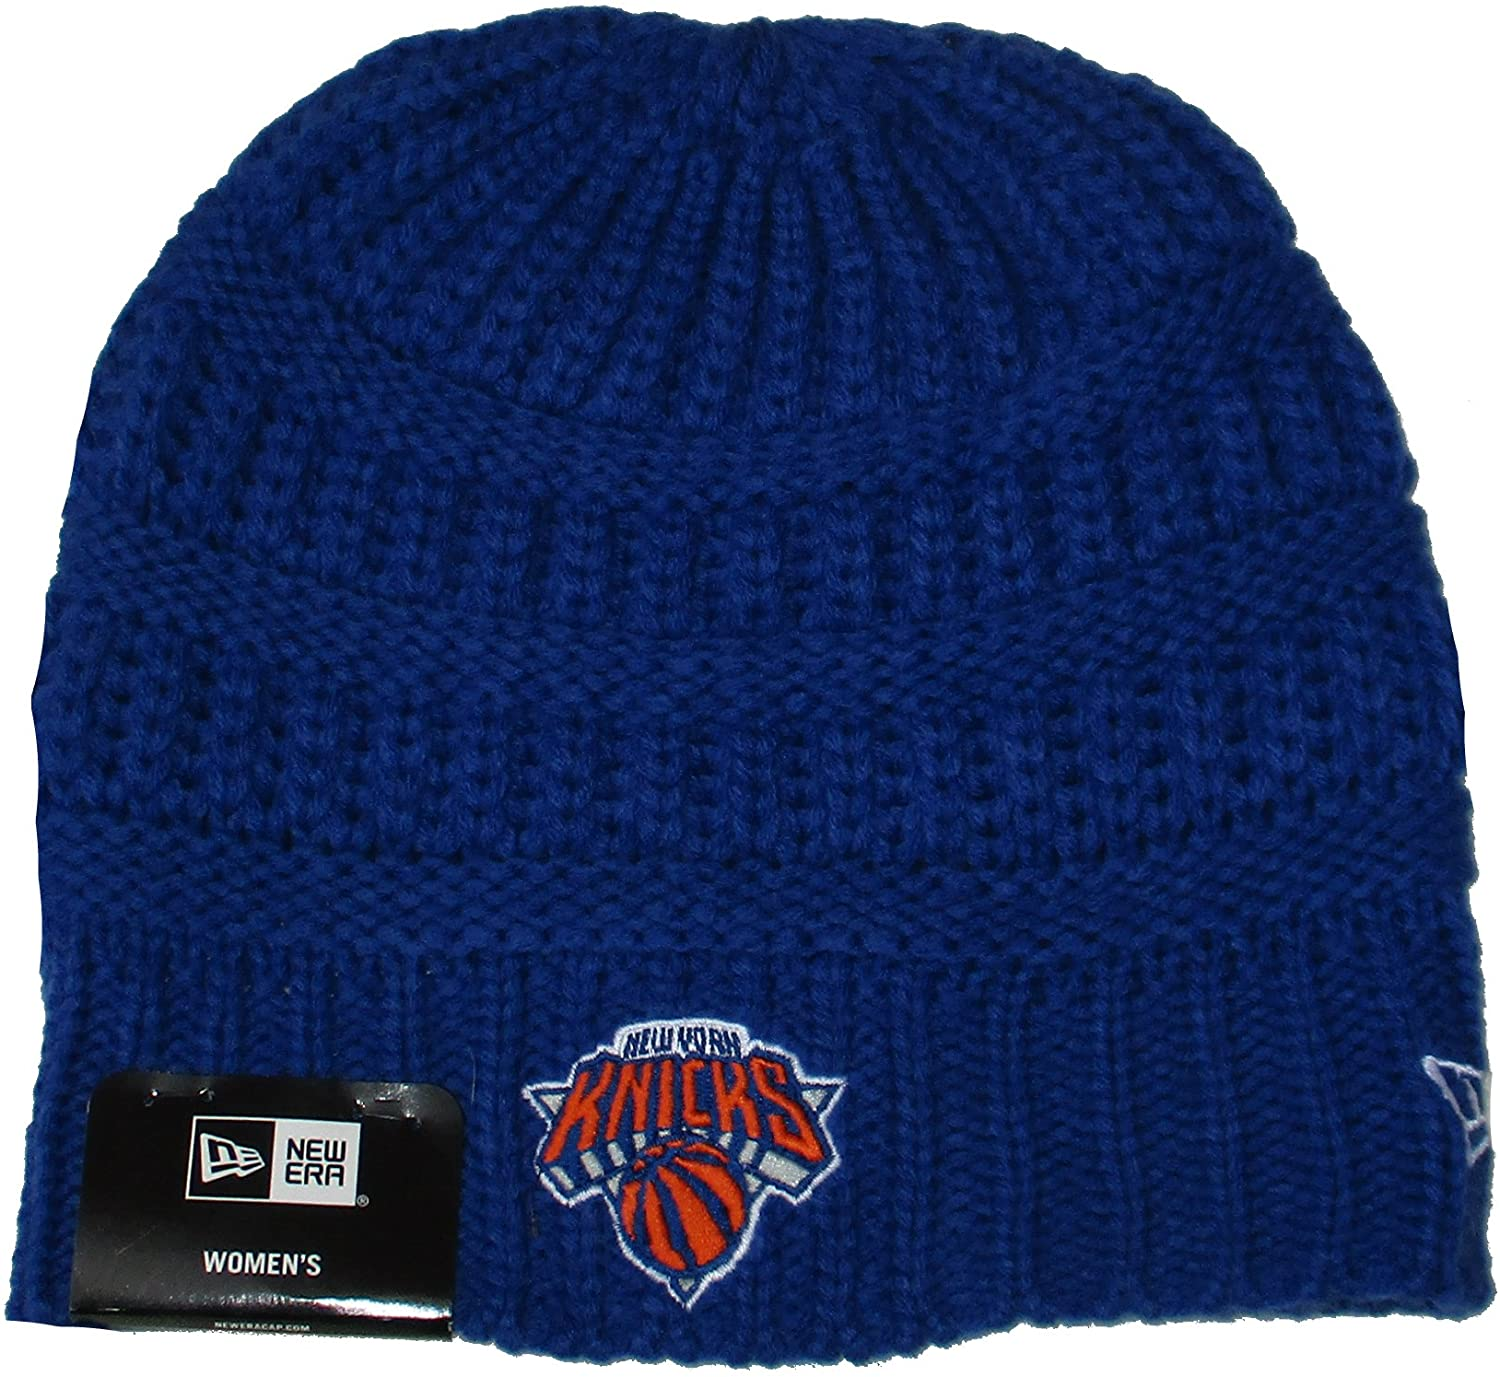 New York Knicks New Era Women's Cuffless Knit Beanie One Size Hat Cap - Team Colors